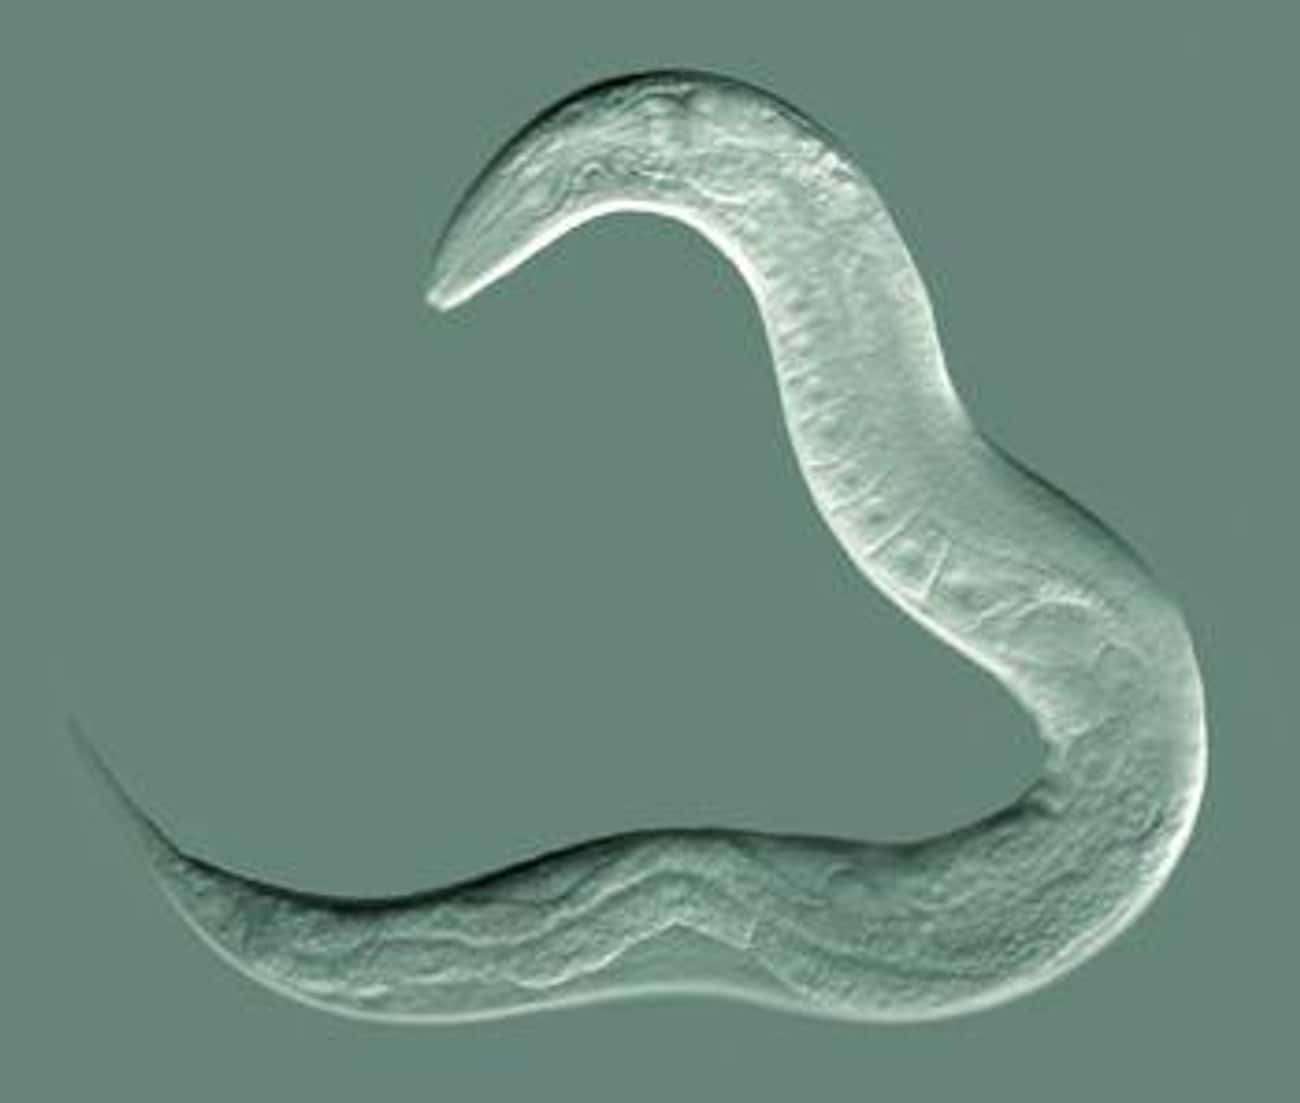 Nematode Worms Can Not Only Su is listed (or ranked) 2 on the list These Animals Can Survive Being Eaten Alive